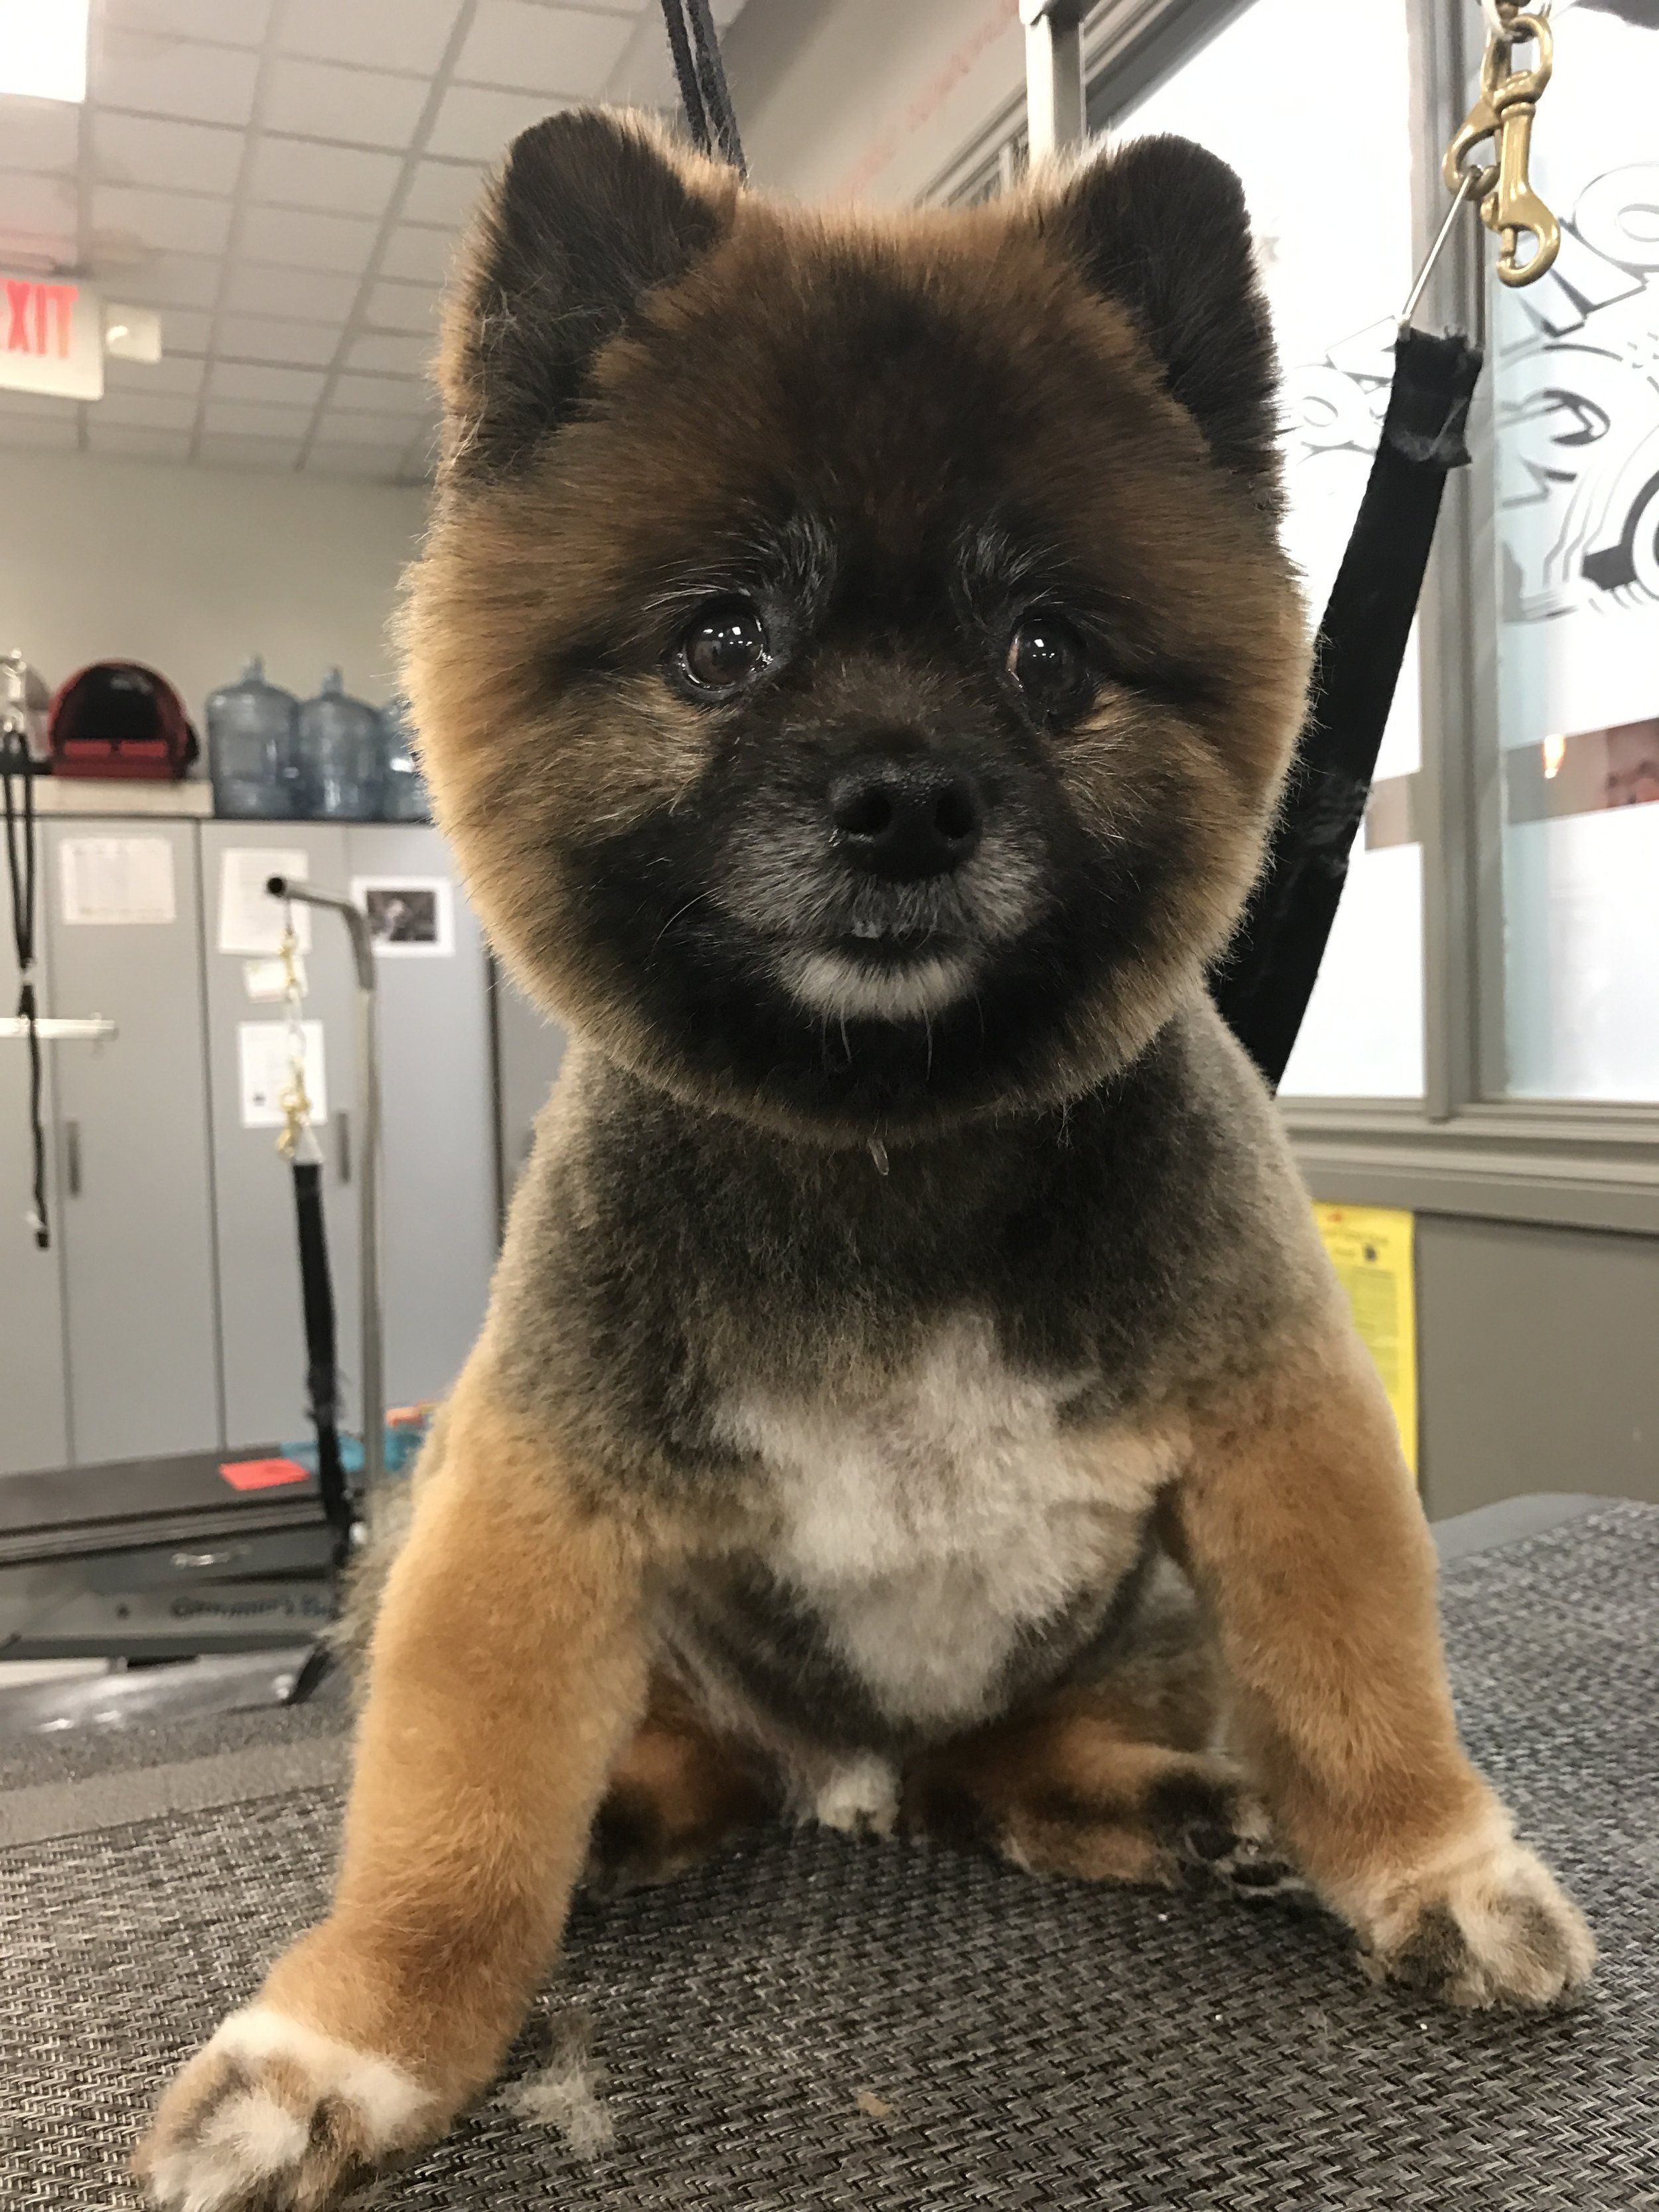 Grooming a Pomeranian